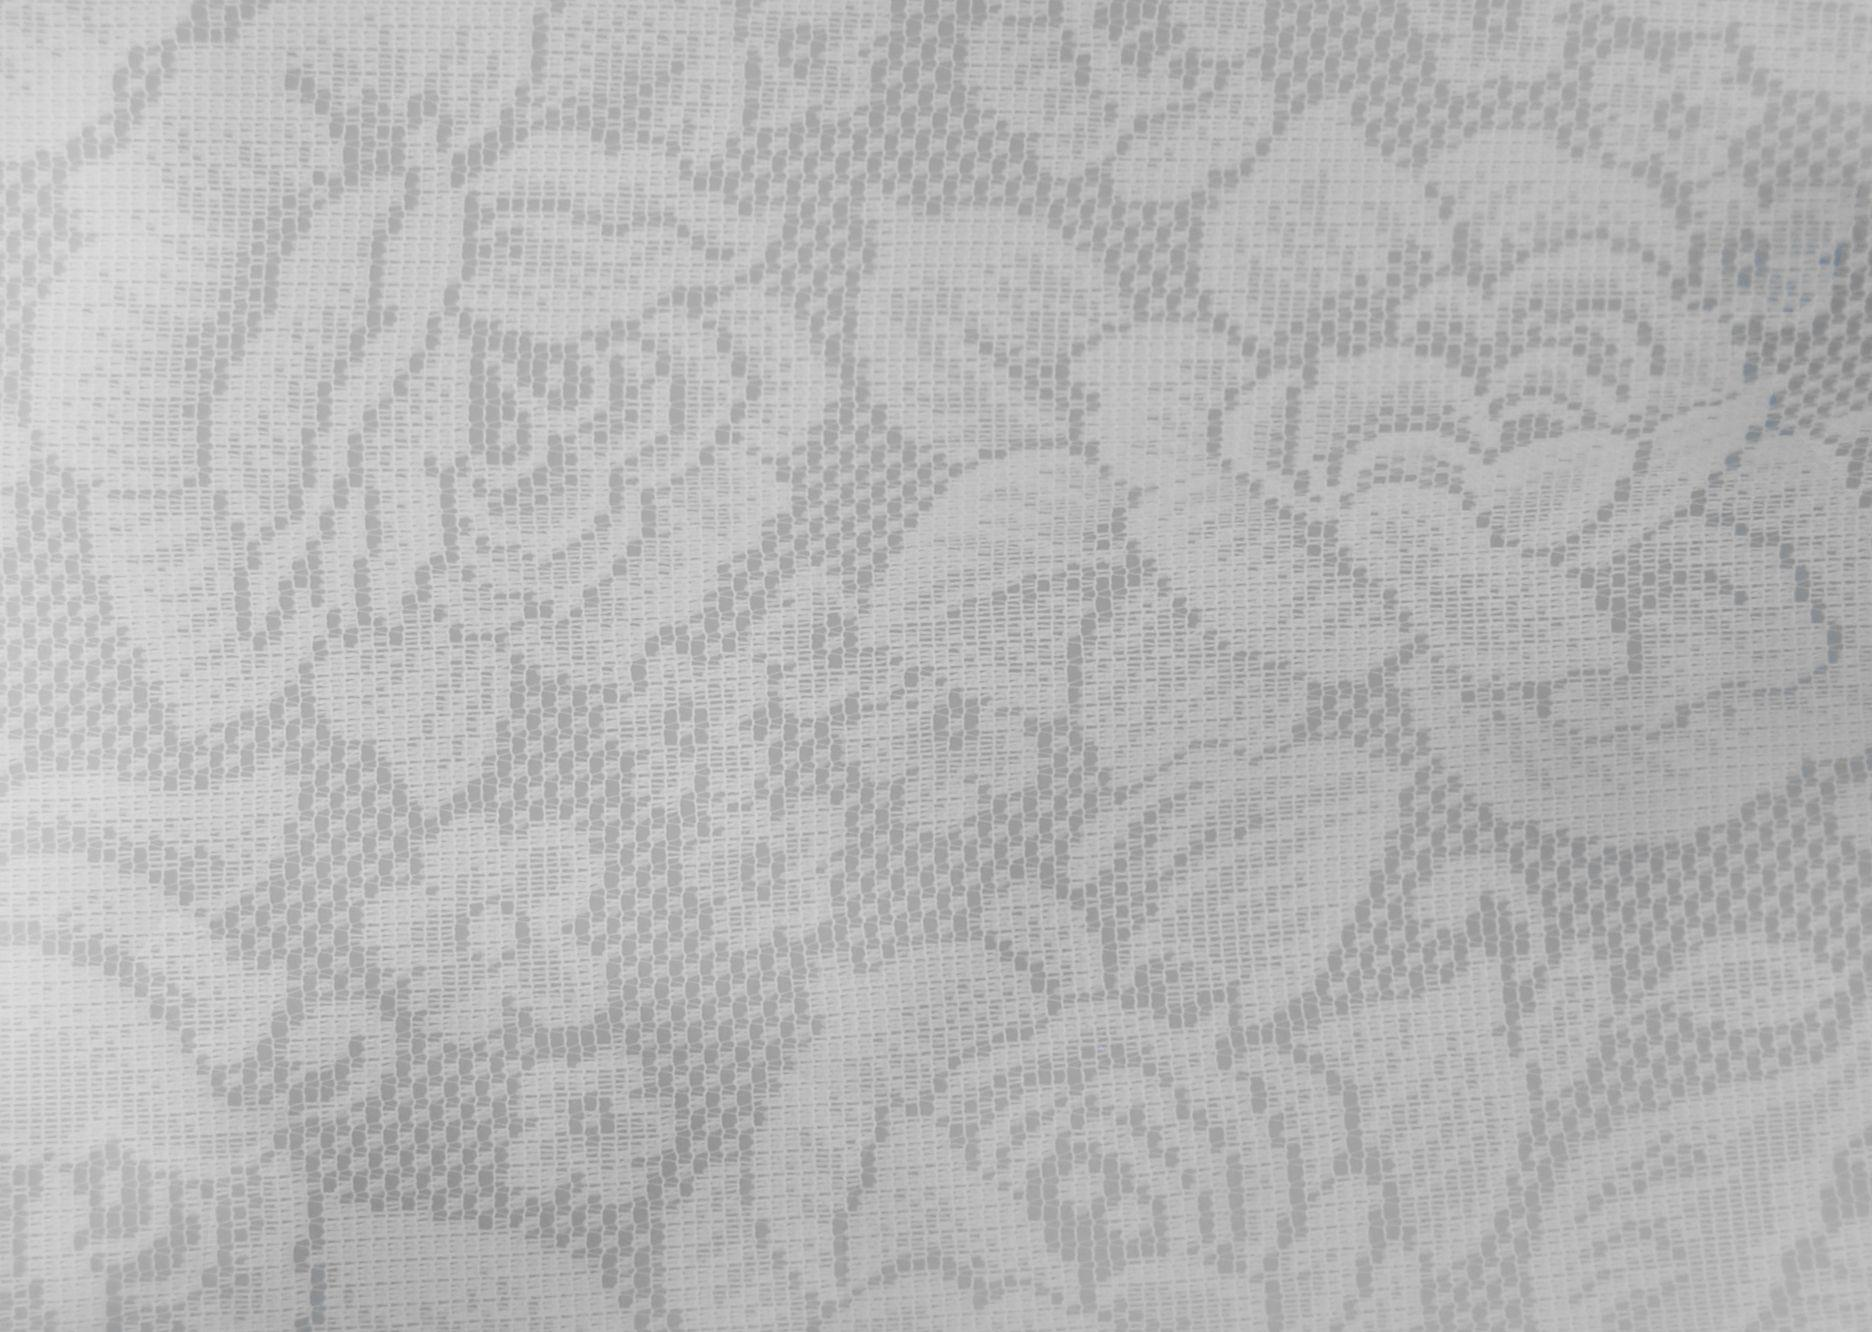 White Lace Backgrounds 1872x1332